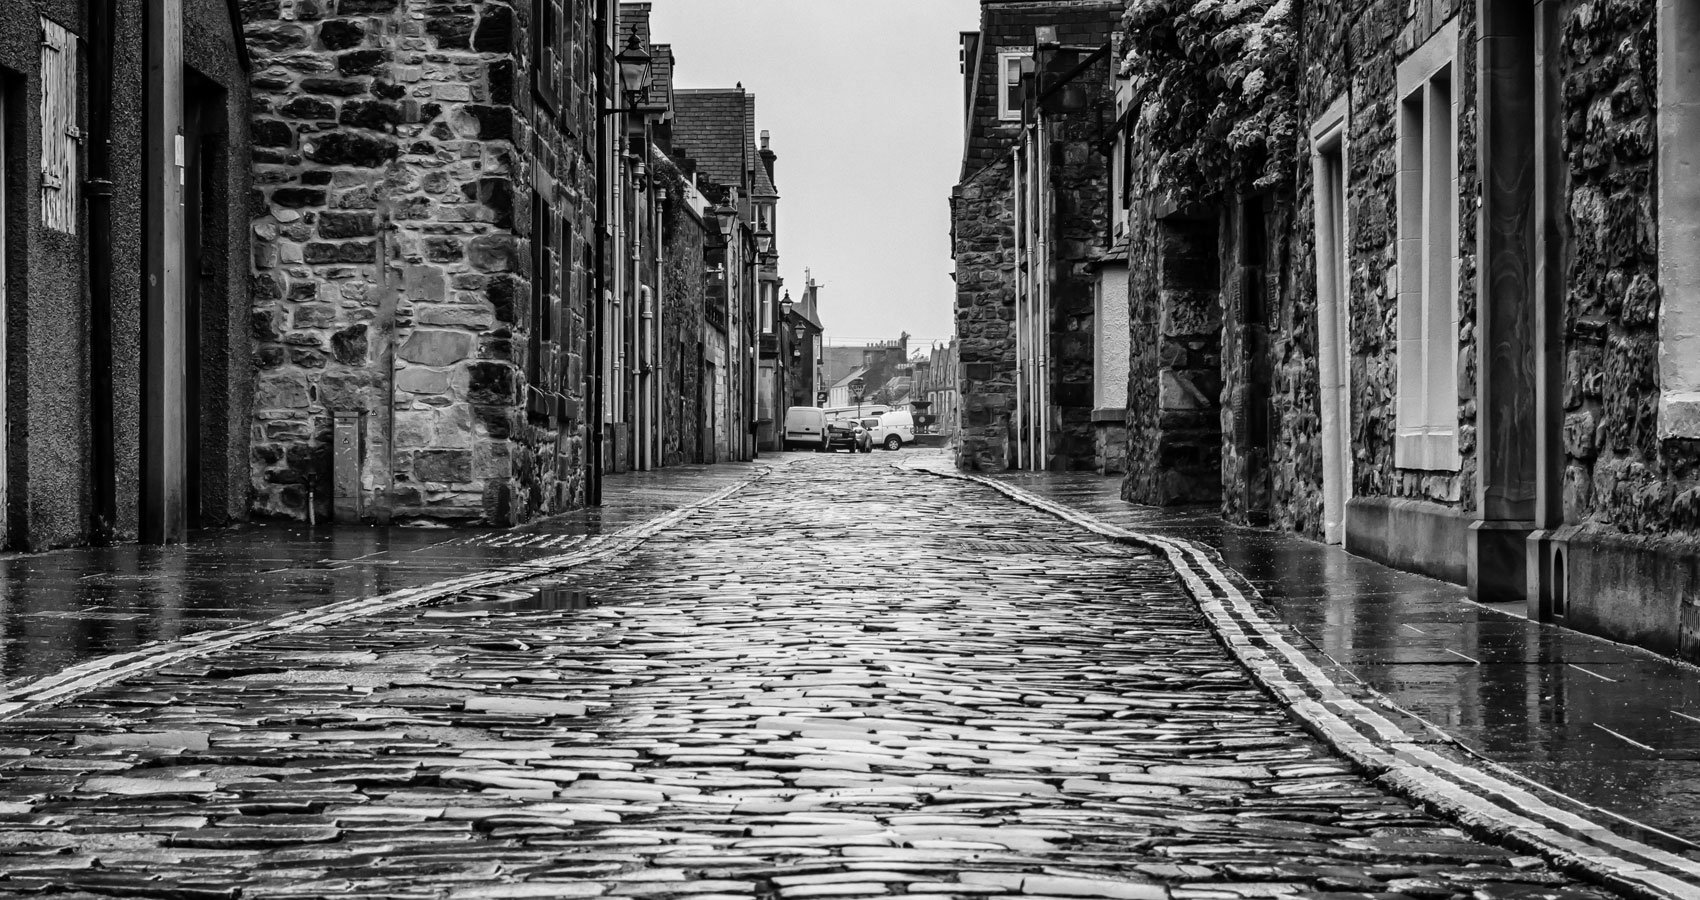 Streets Of Stone, written by Anne G at Spillwords.com